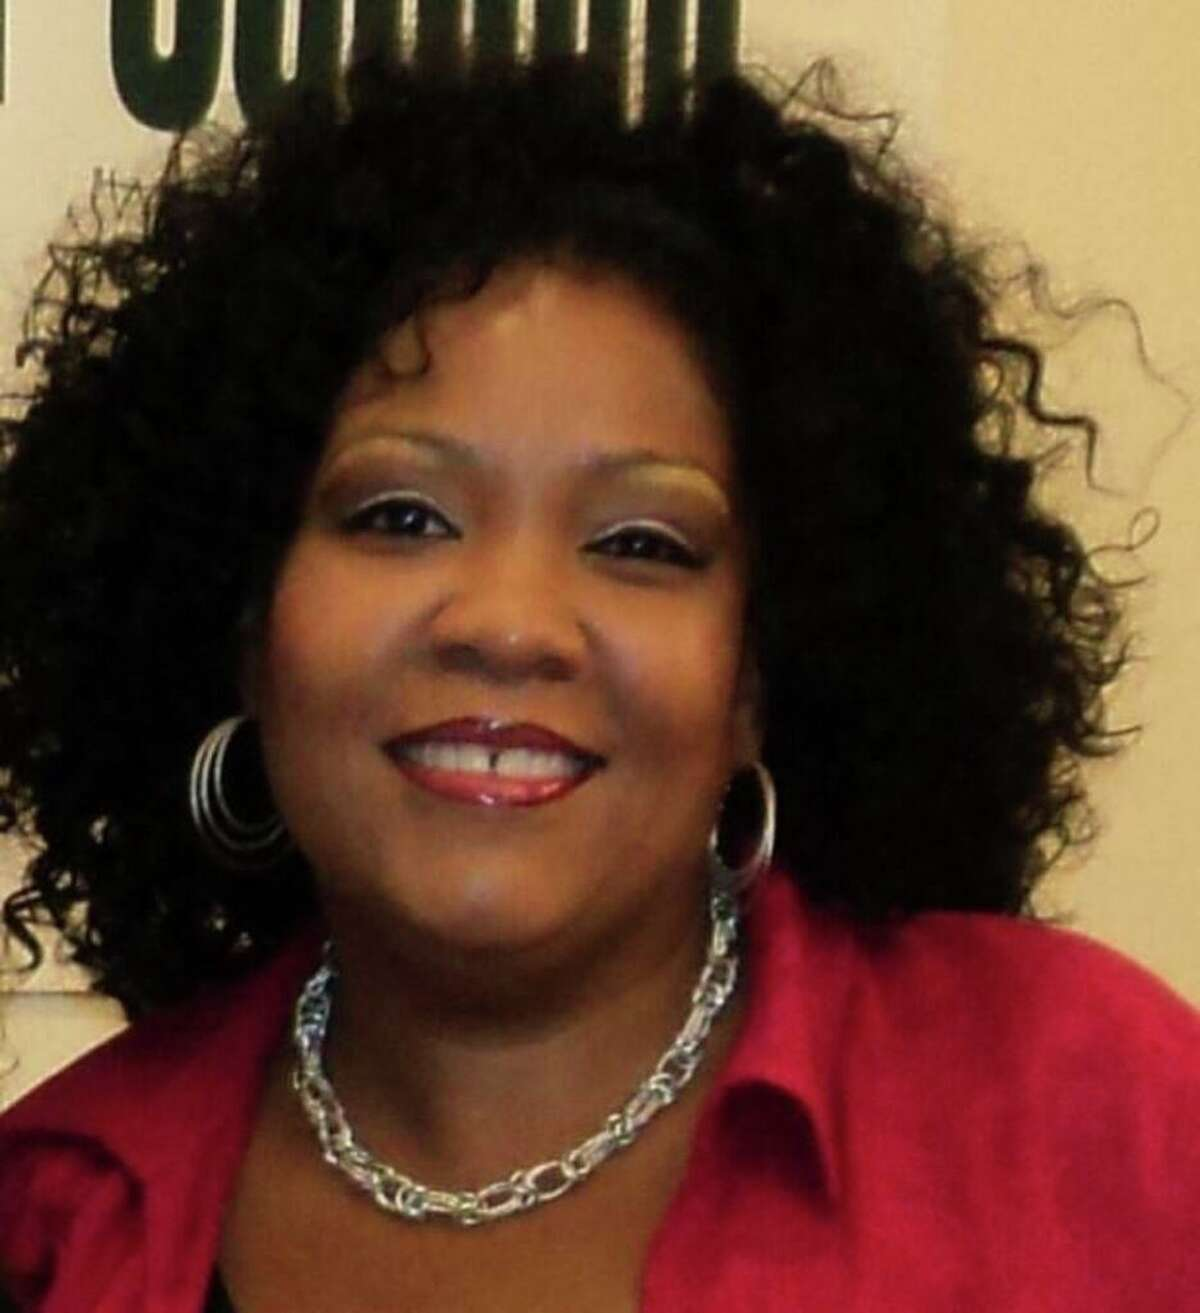 Nichole Jefferson won back pay, benefits and reinstatement as head of the the Commission on Equal Opportunities